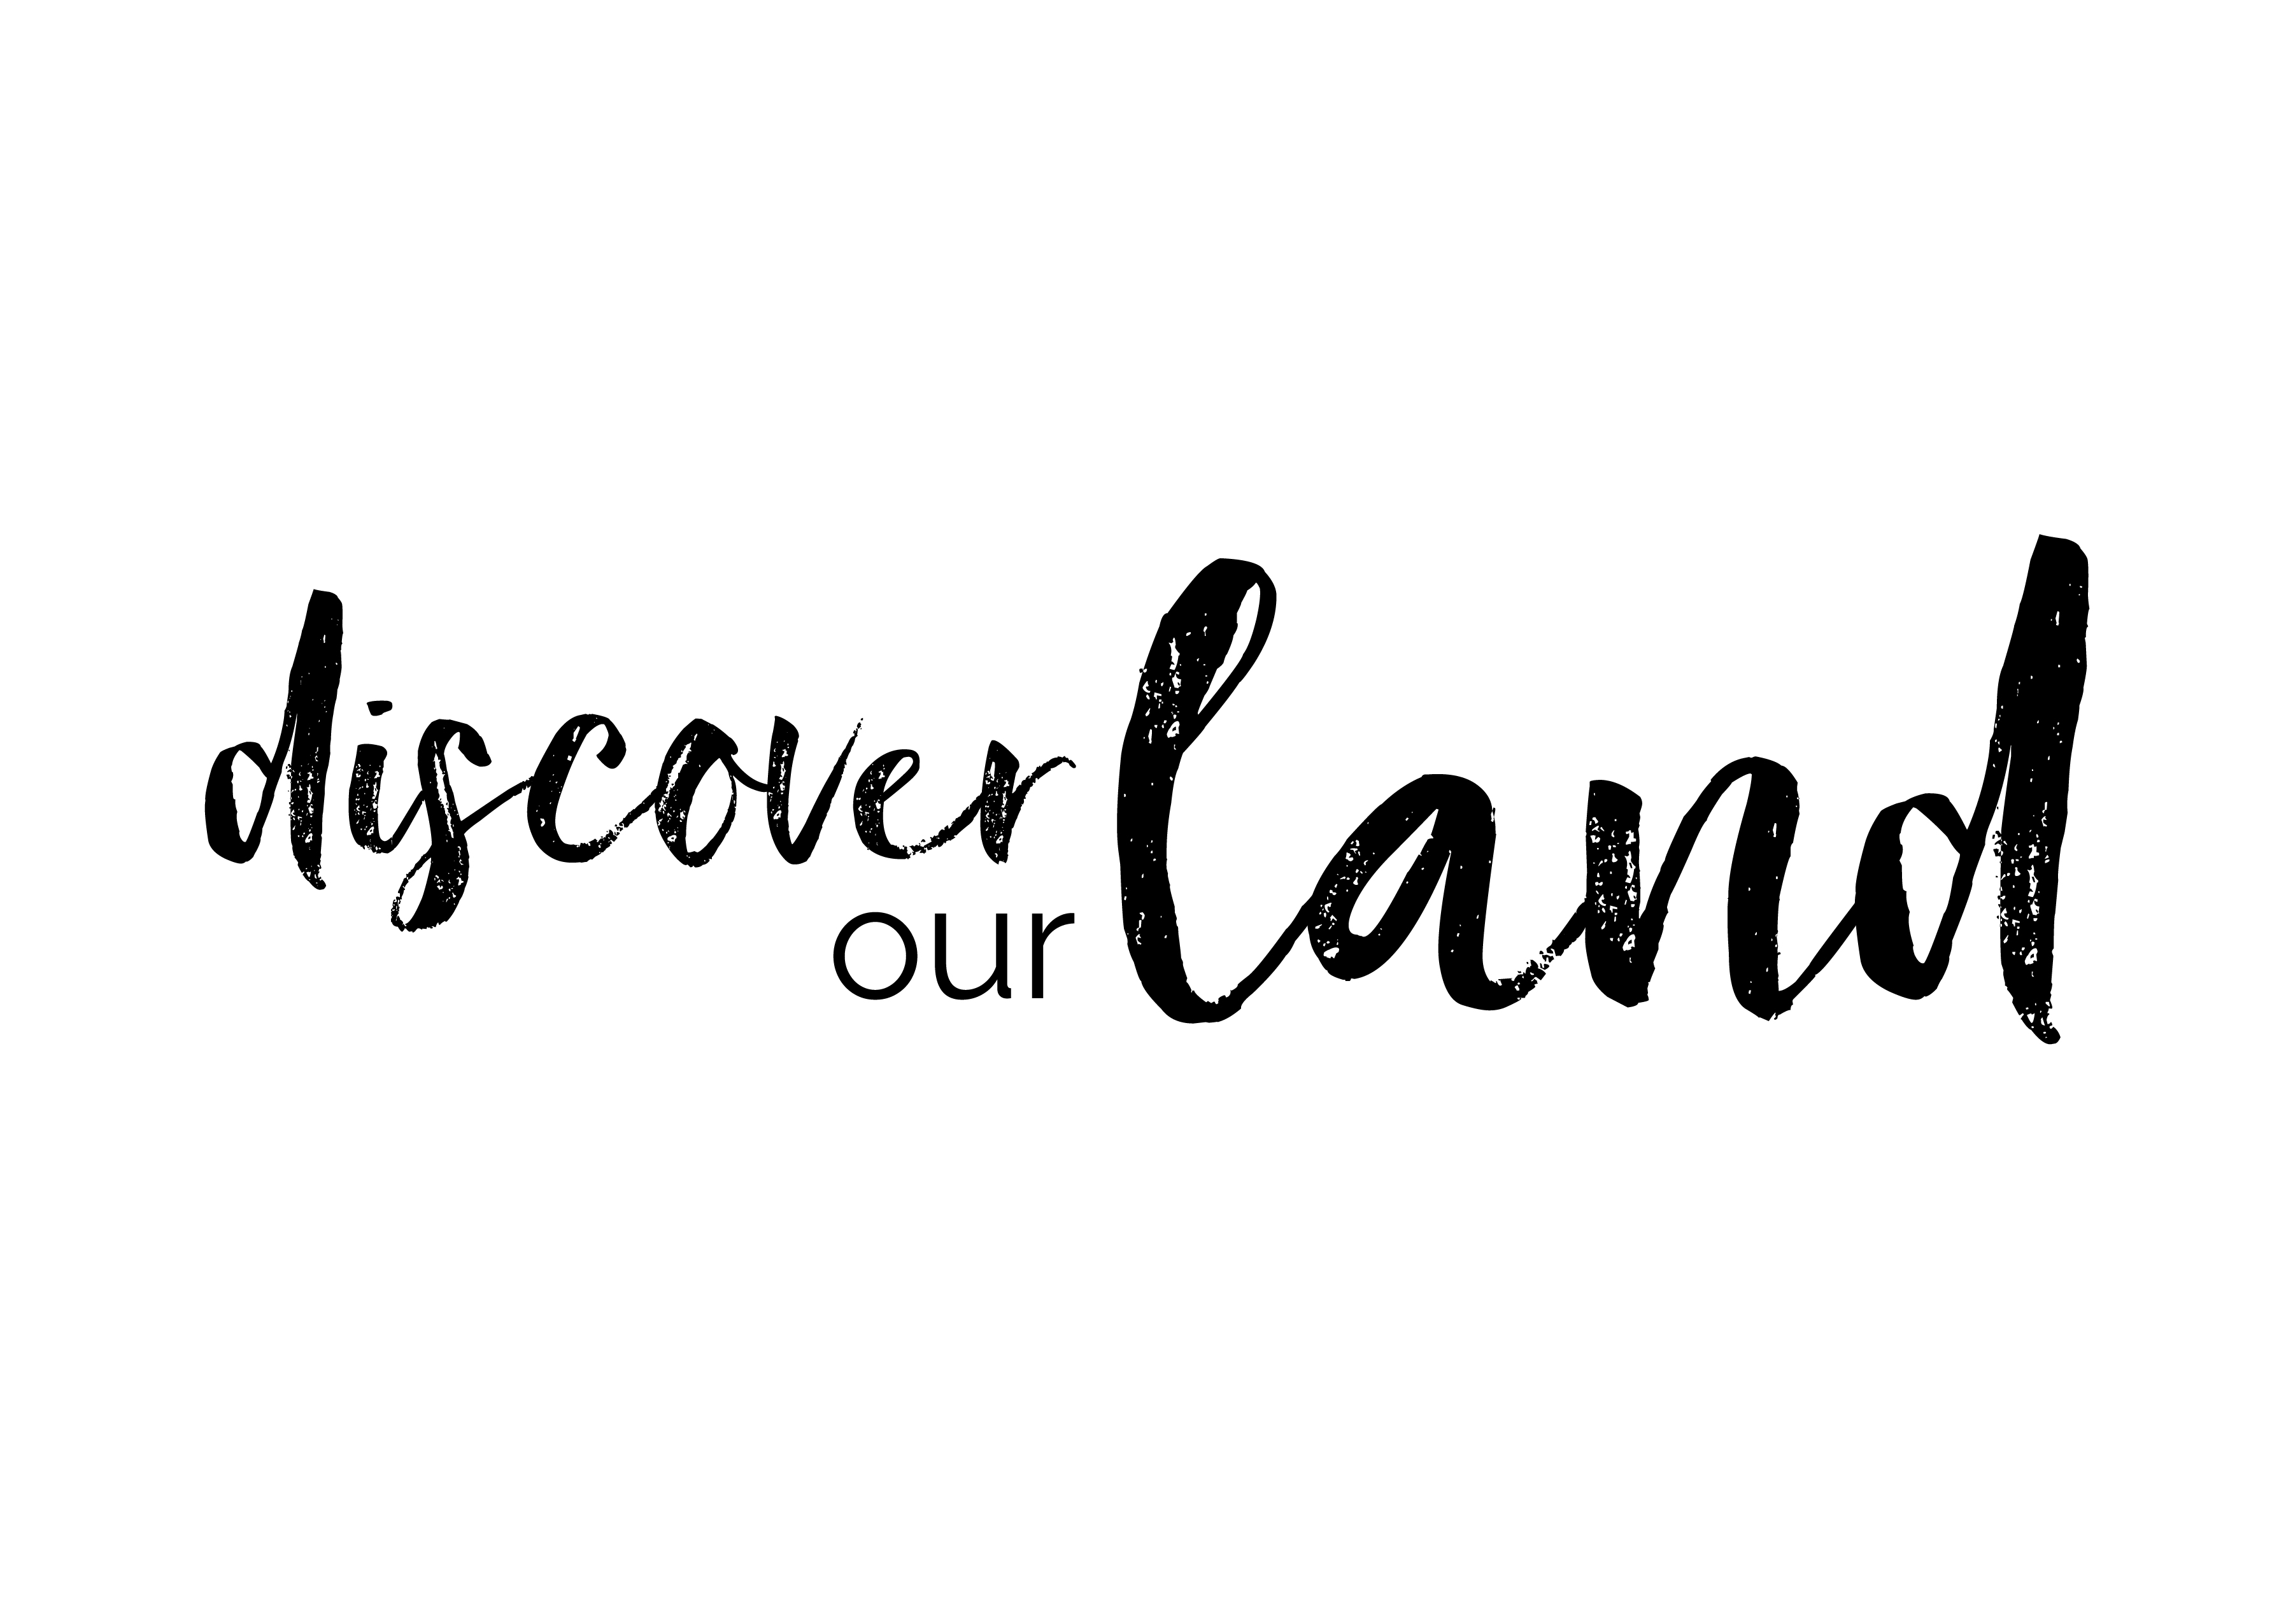 Discover our land